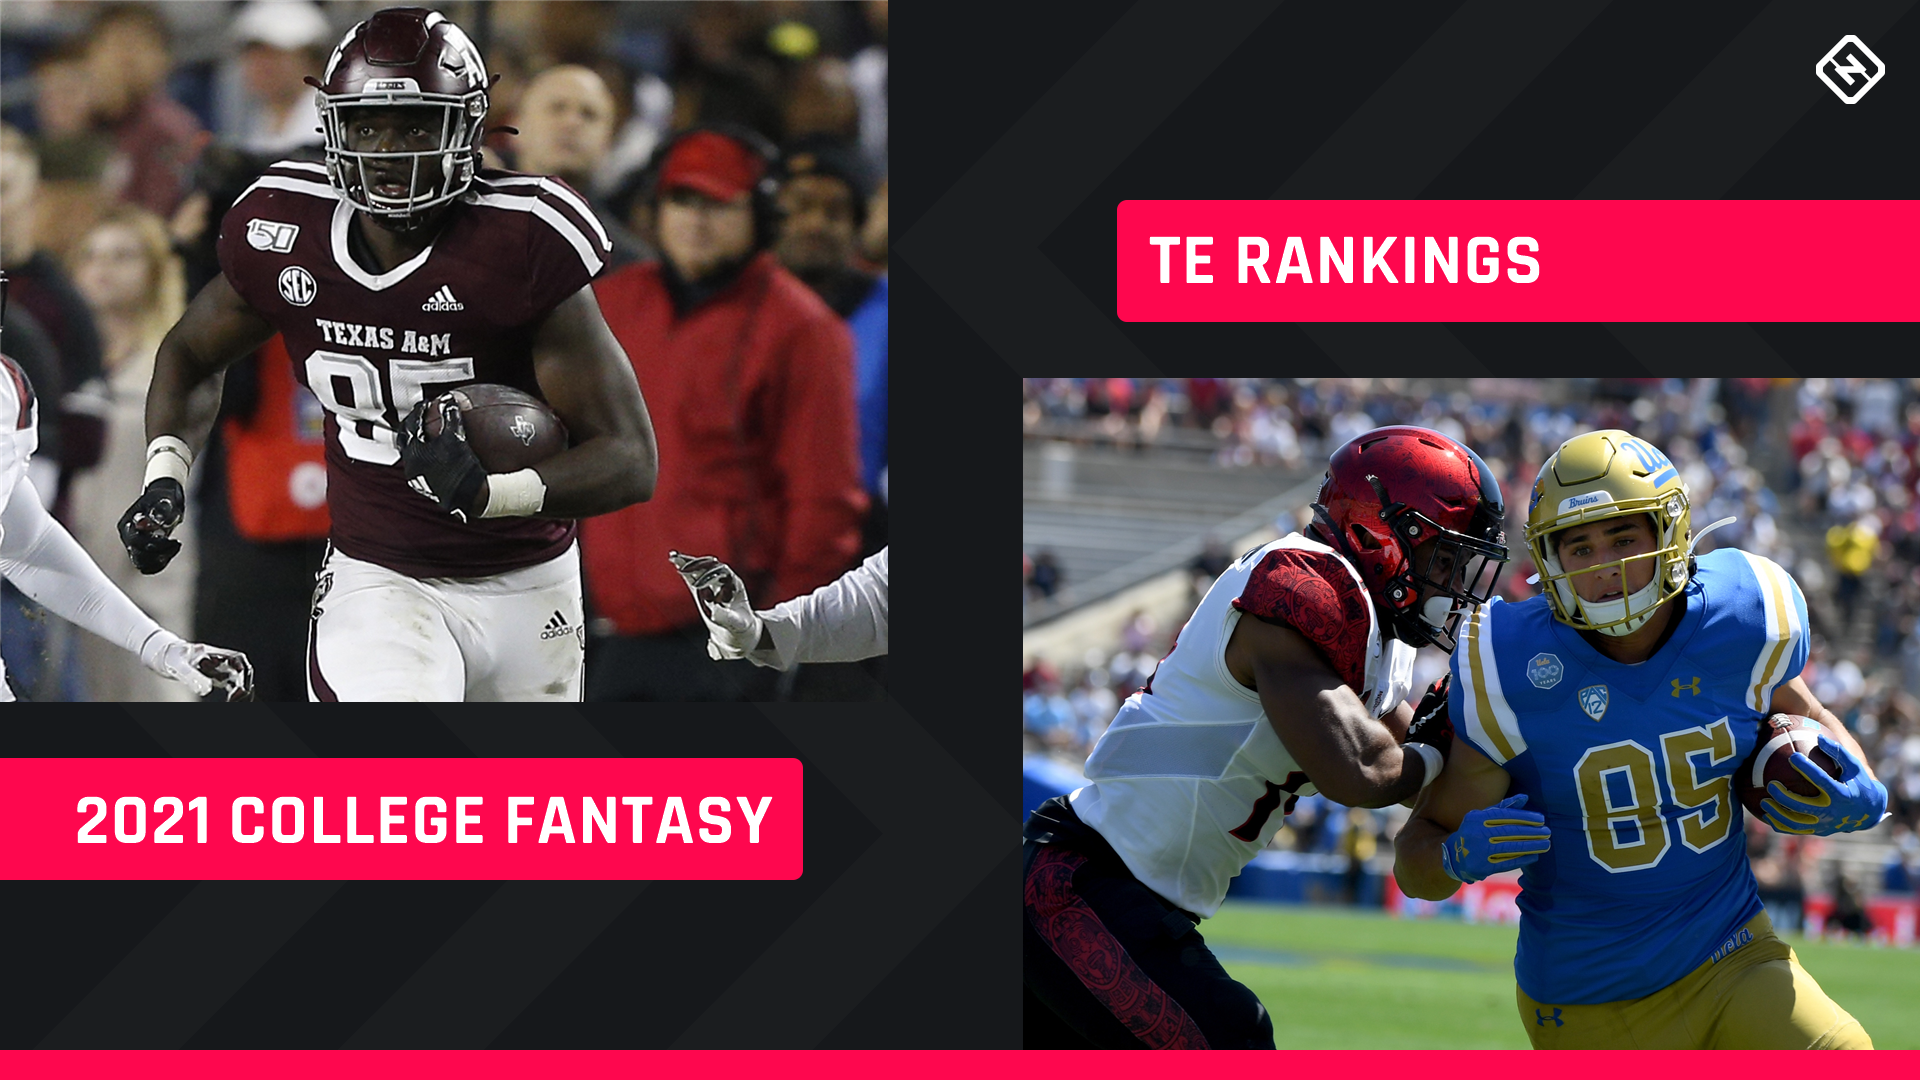 College Fantasy Football TE Rankings 2021: Top tight ends, sleepers to know